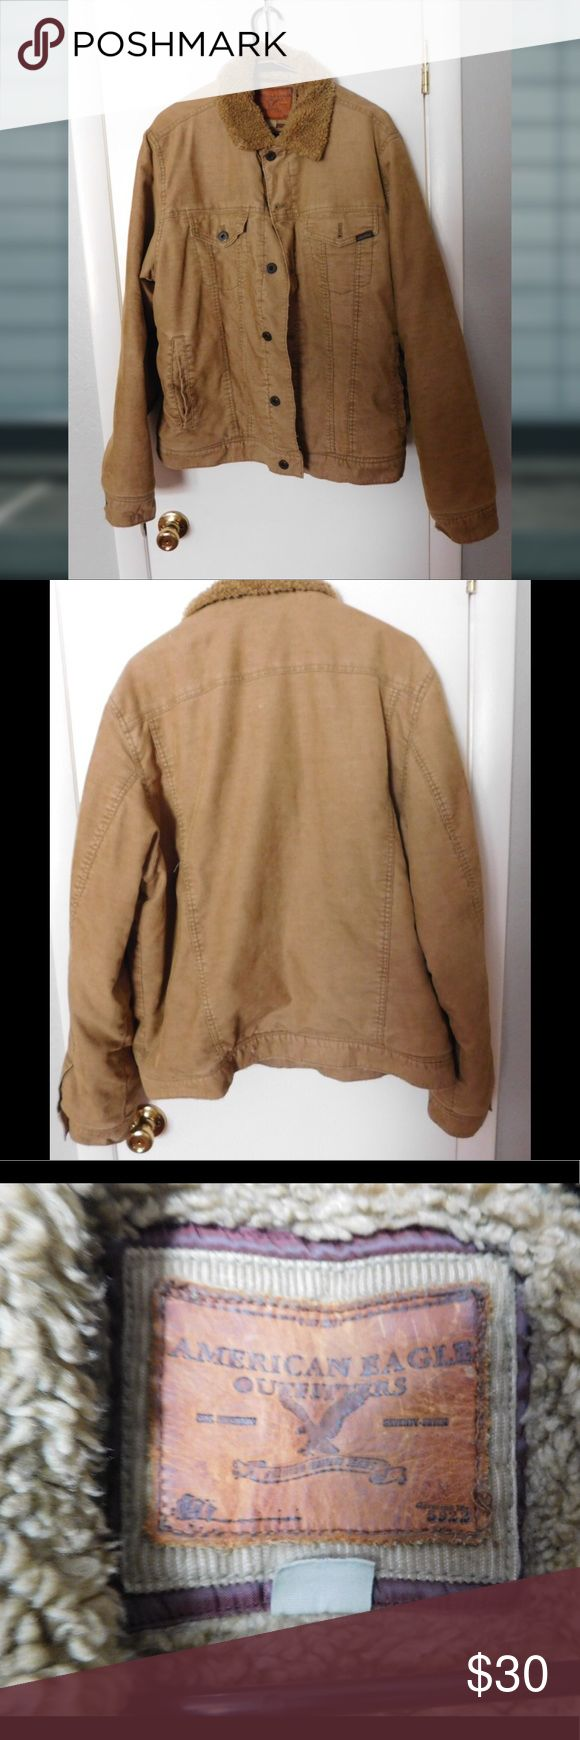 American Eagle Outfitters coat Tan AEO coat. Excellent condition. Very comfy. Size XL American Eagle Outfitters Jackets & Coats